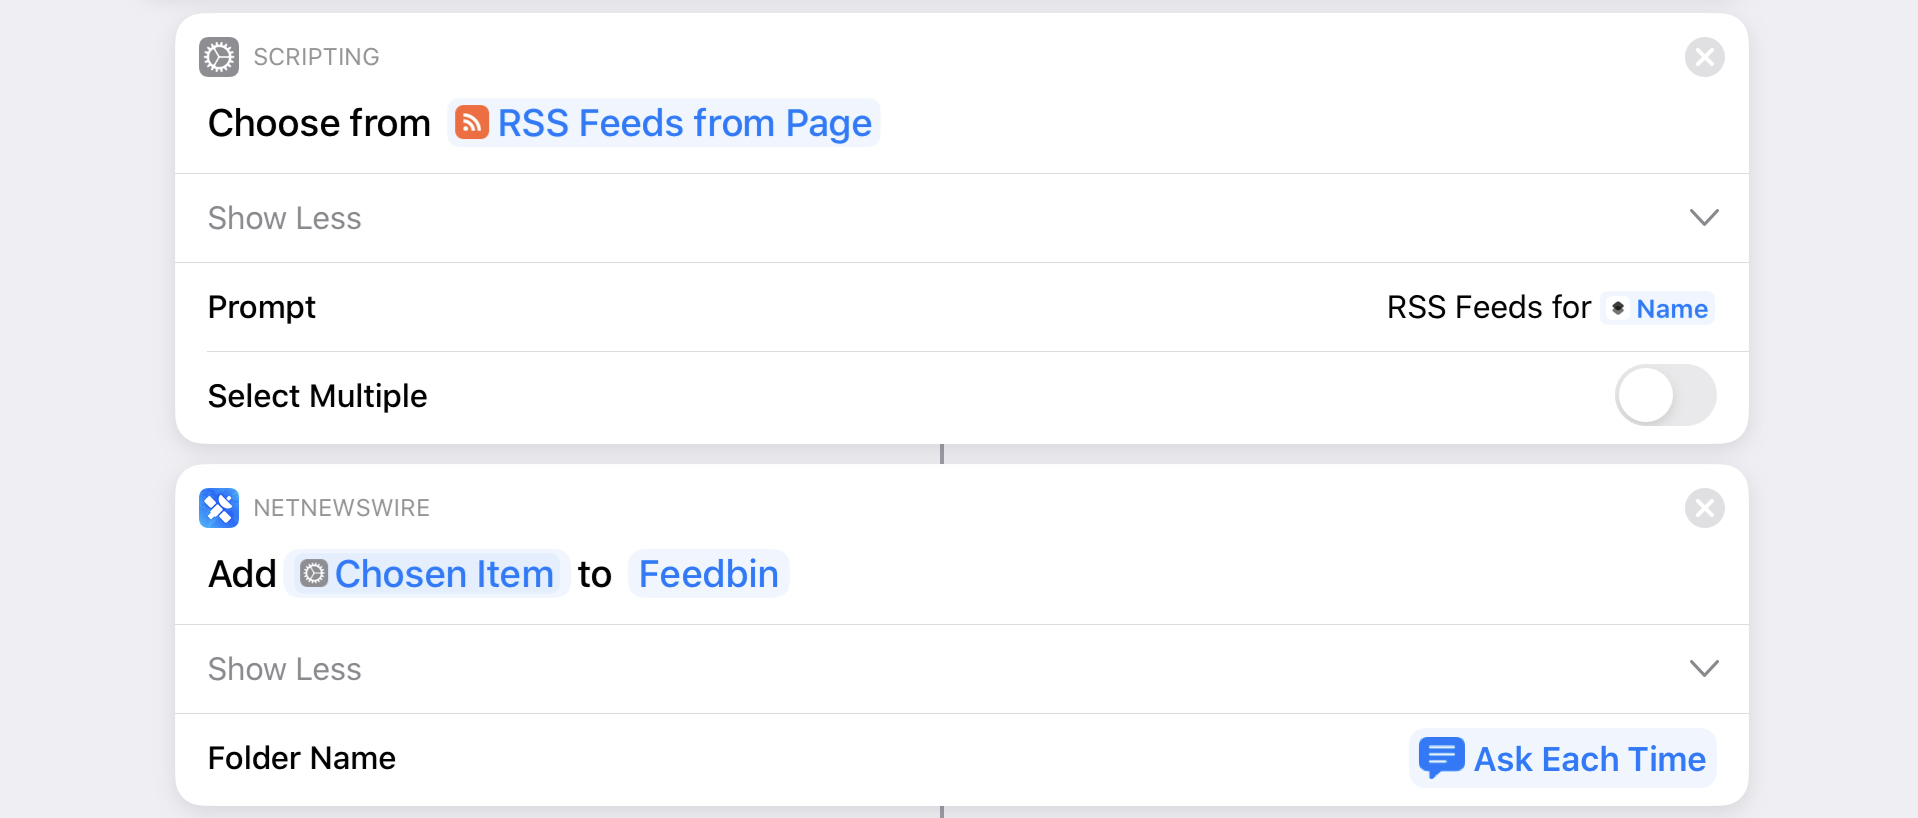 All it takes to subscribe to a new feed in NetNewsWire is a single action.